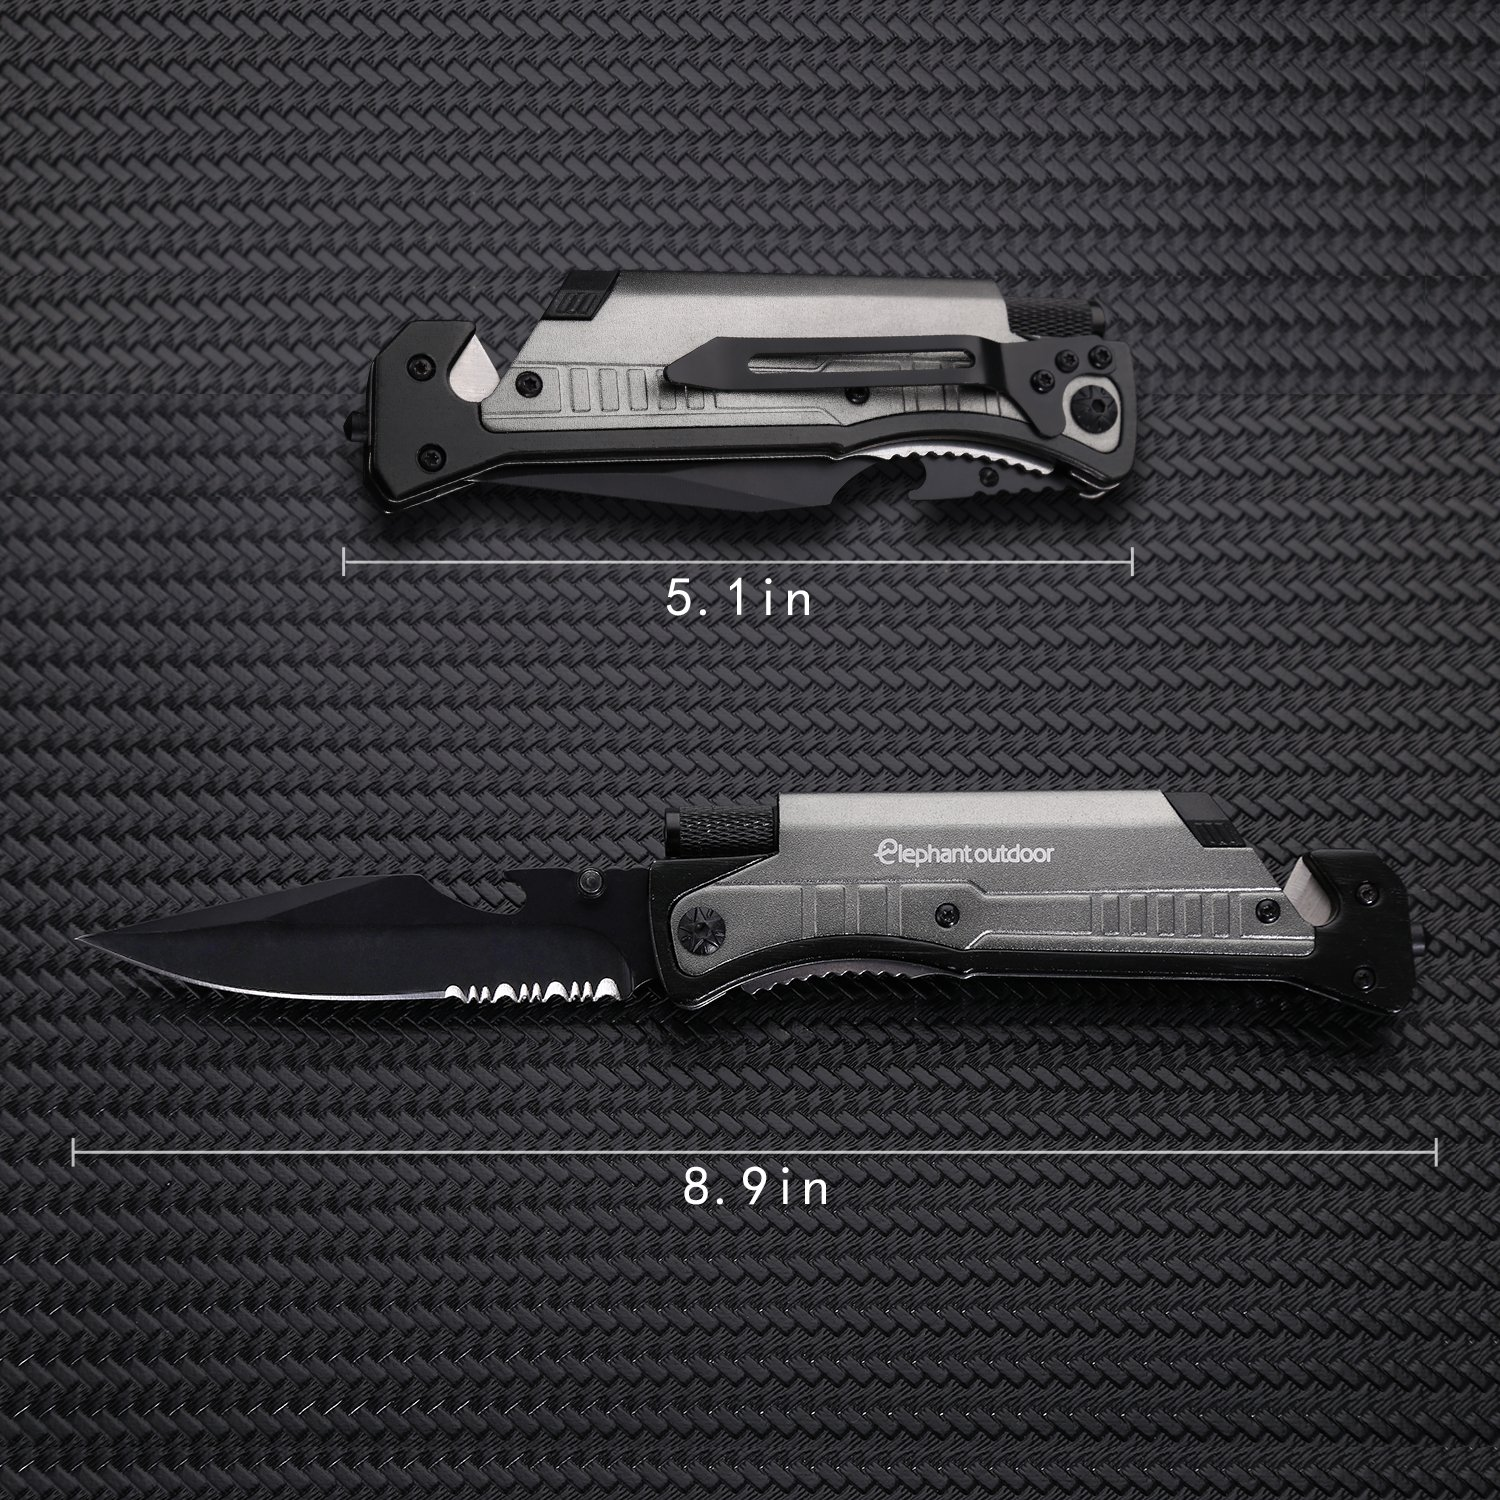 Survival Knife - Updated 7-in-1 Tactical Pocket Folding Knife with LED Flashlight, Glass Breaker, Seatbelt Cutter, Magnesium Fire Starter, Whistle and Bottle Opener, Best Stainless Steel Camping Gear by Elephant outdoor (Image #4)